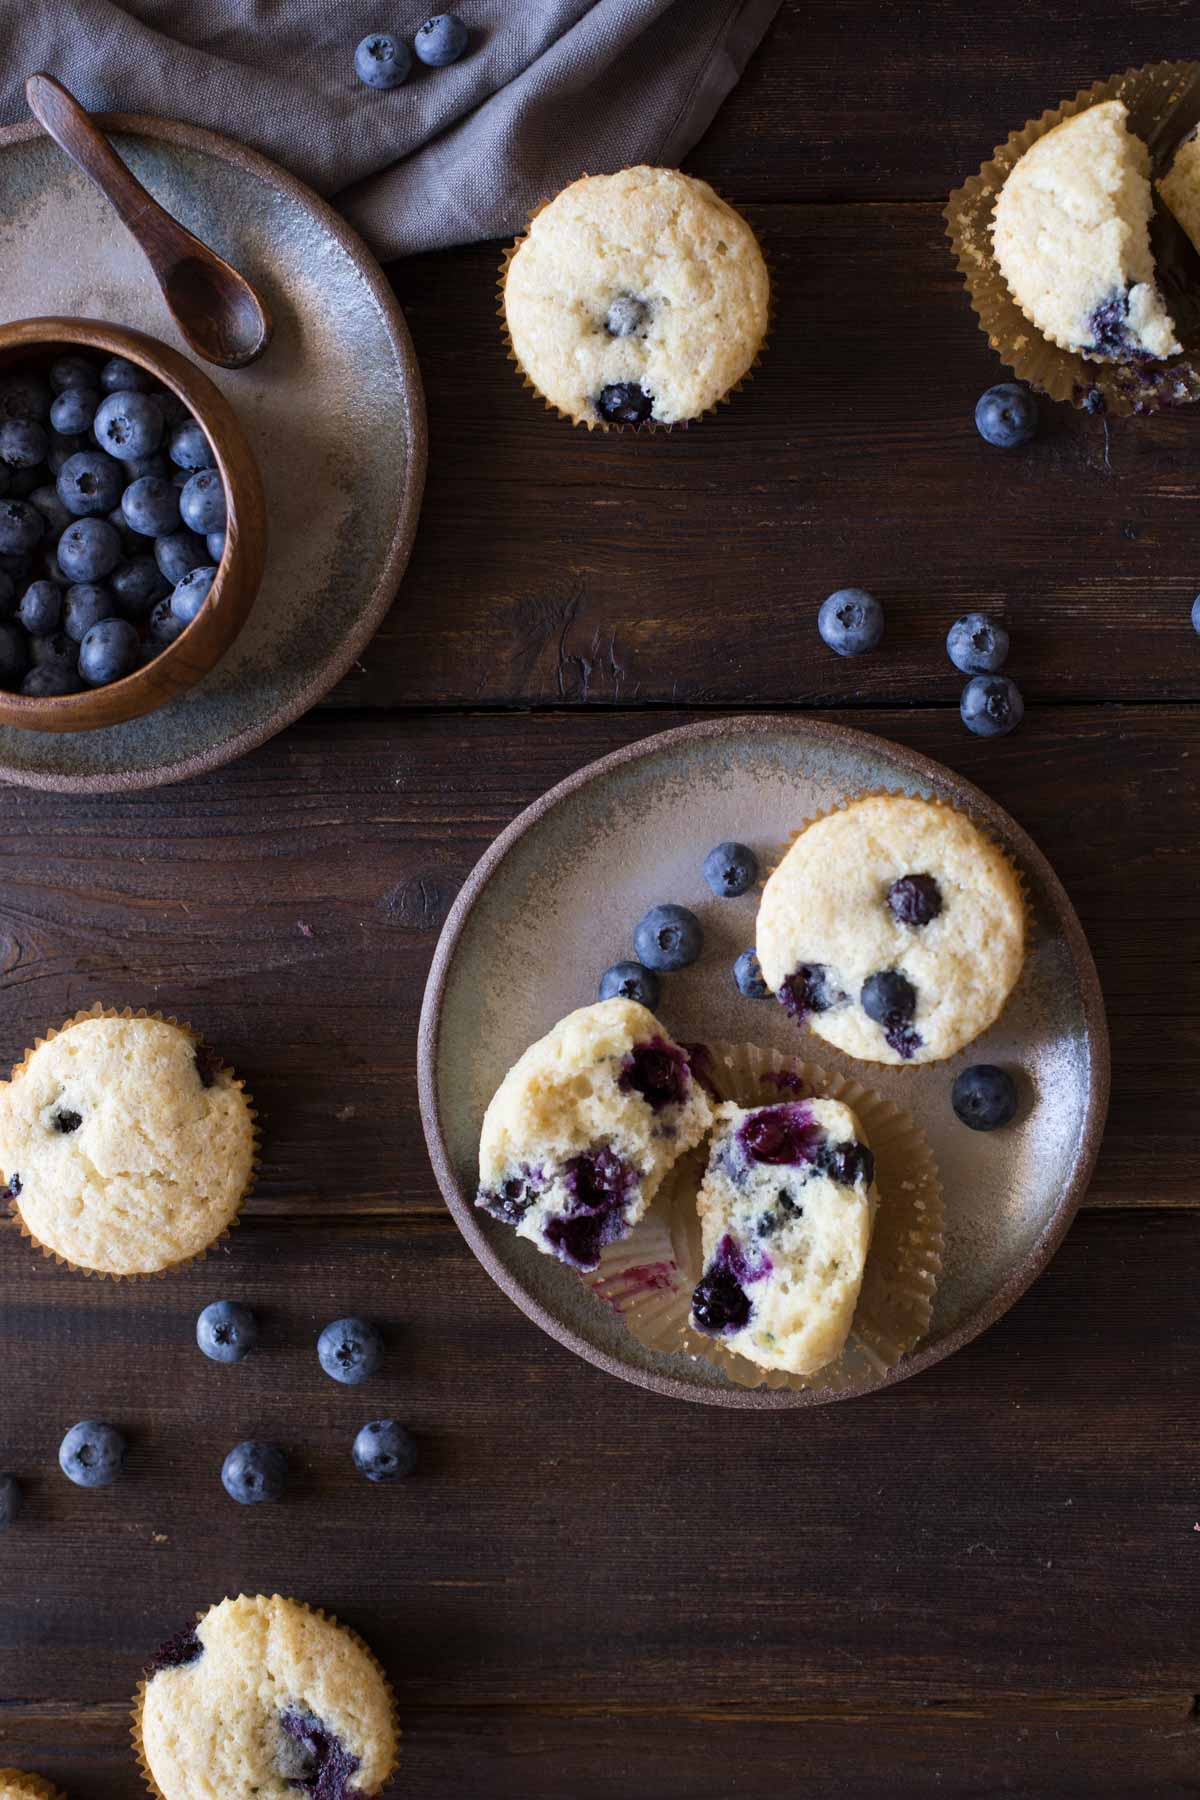 A Vanilla Blueberry Buttermilk Muffin split in half, sitting on a plate with a whole muffin and some blueberries, with more muffins and blueberries near the plate, and a wood bowl of blueberries sitting on another plate.